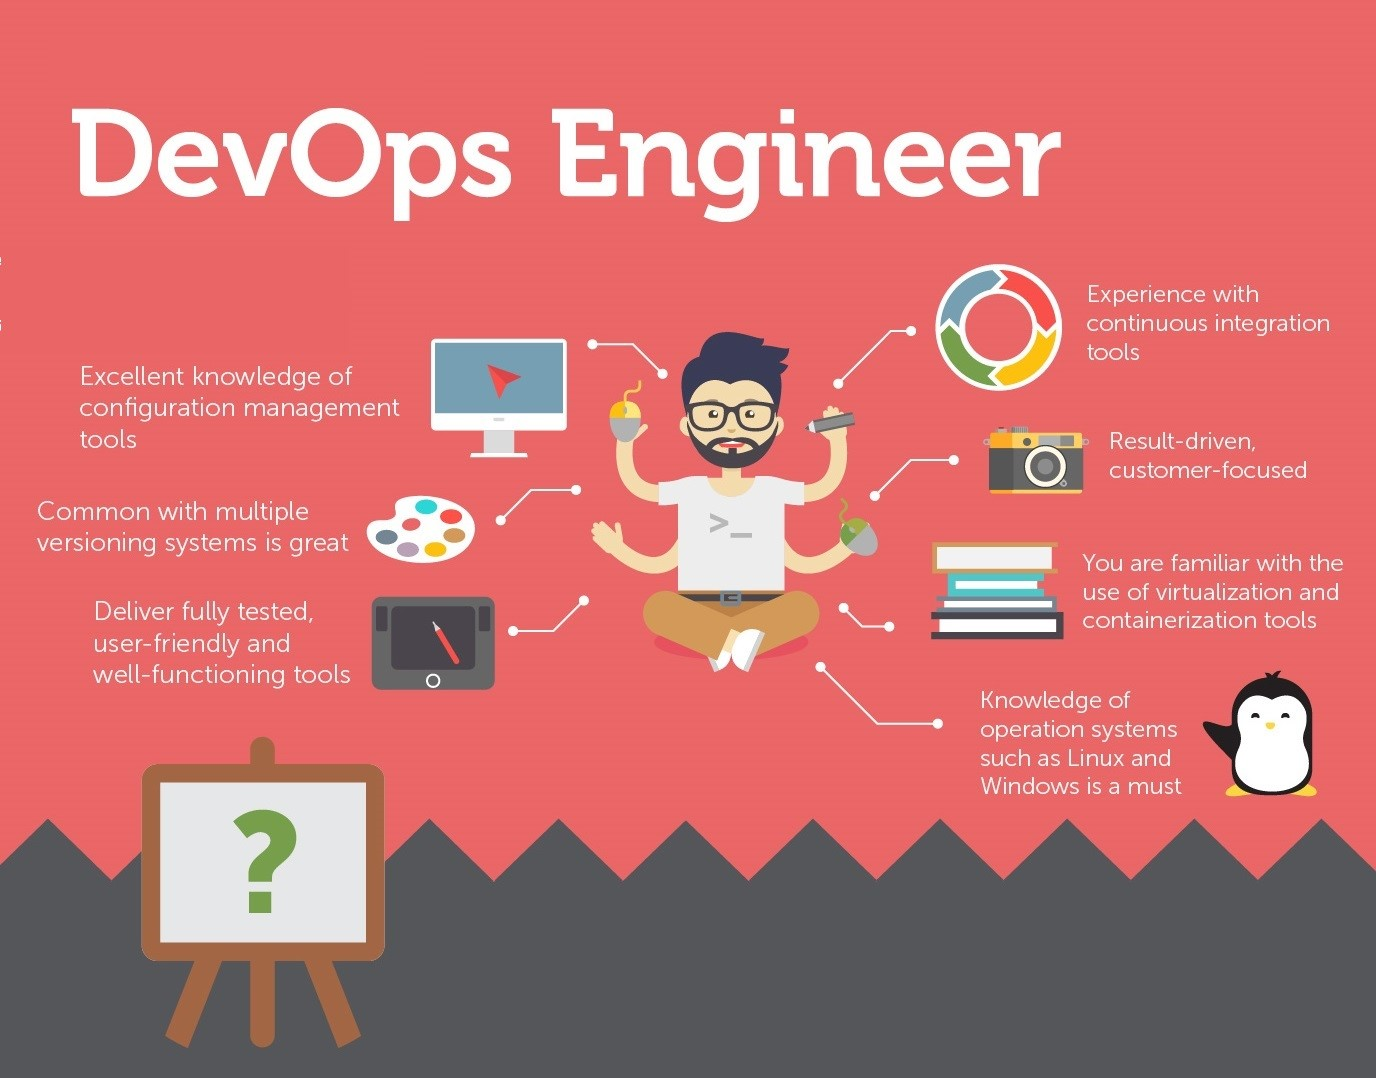 Rise of DevOps Engineer